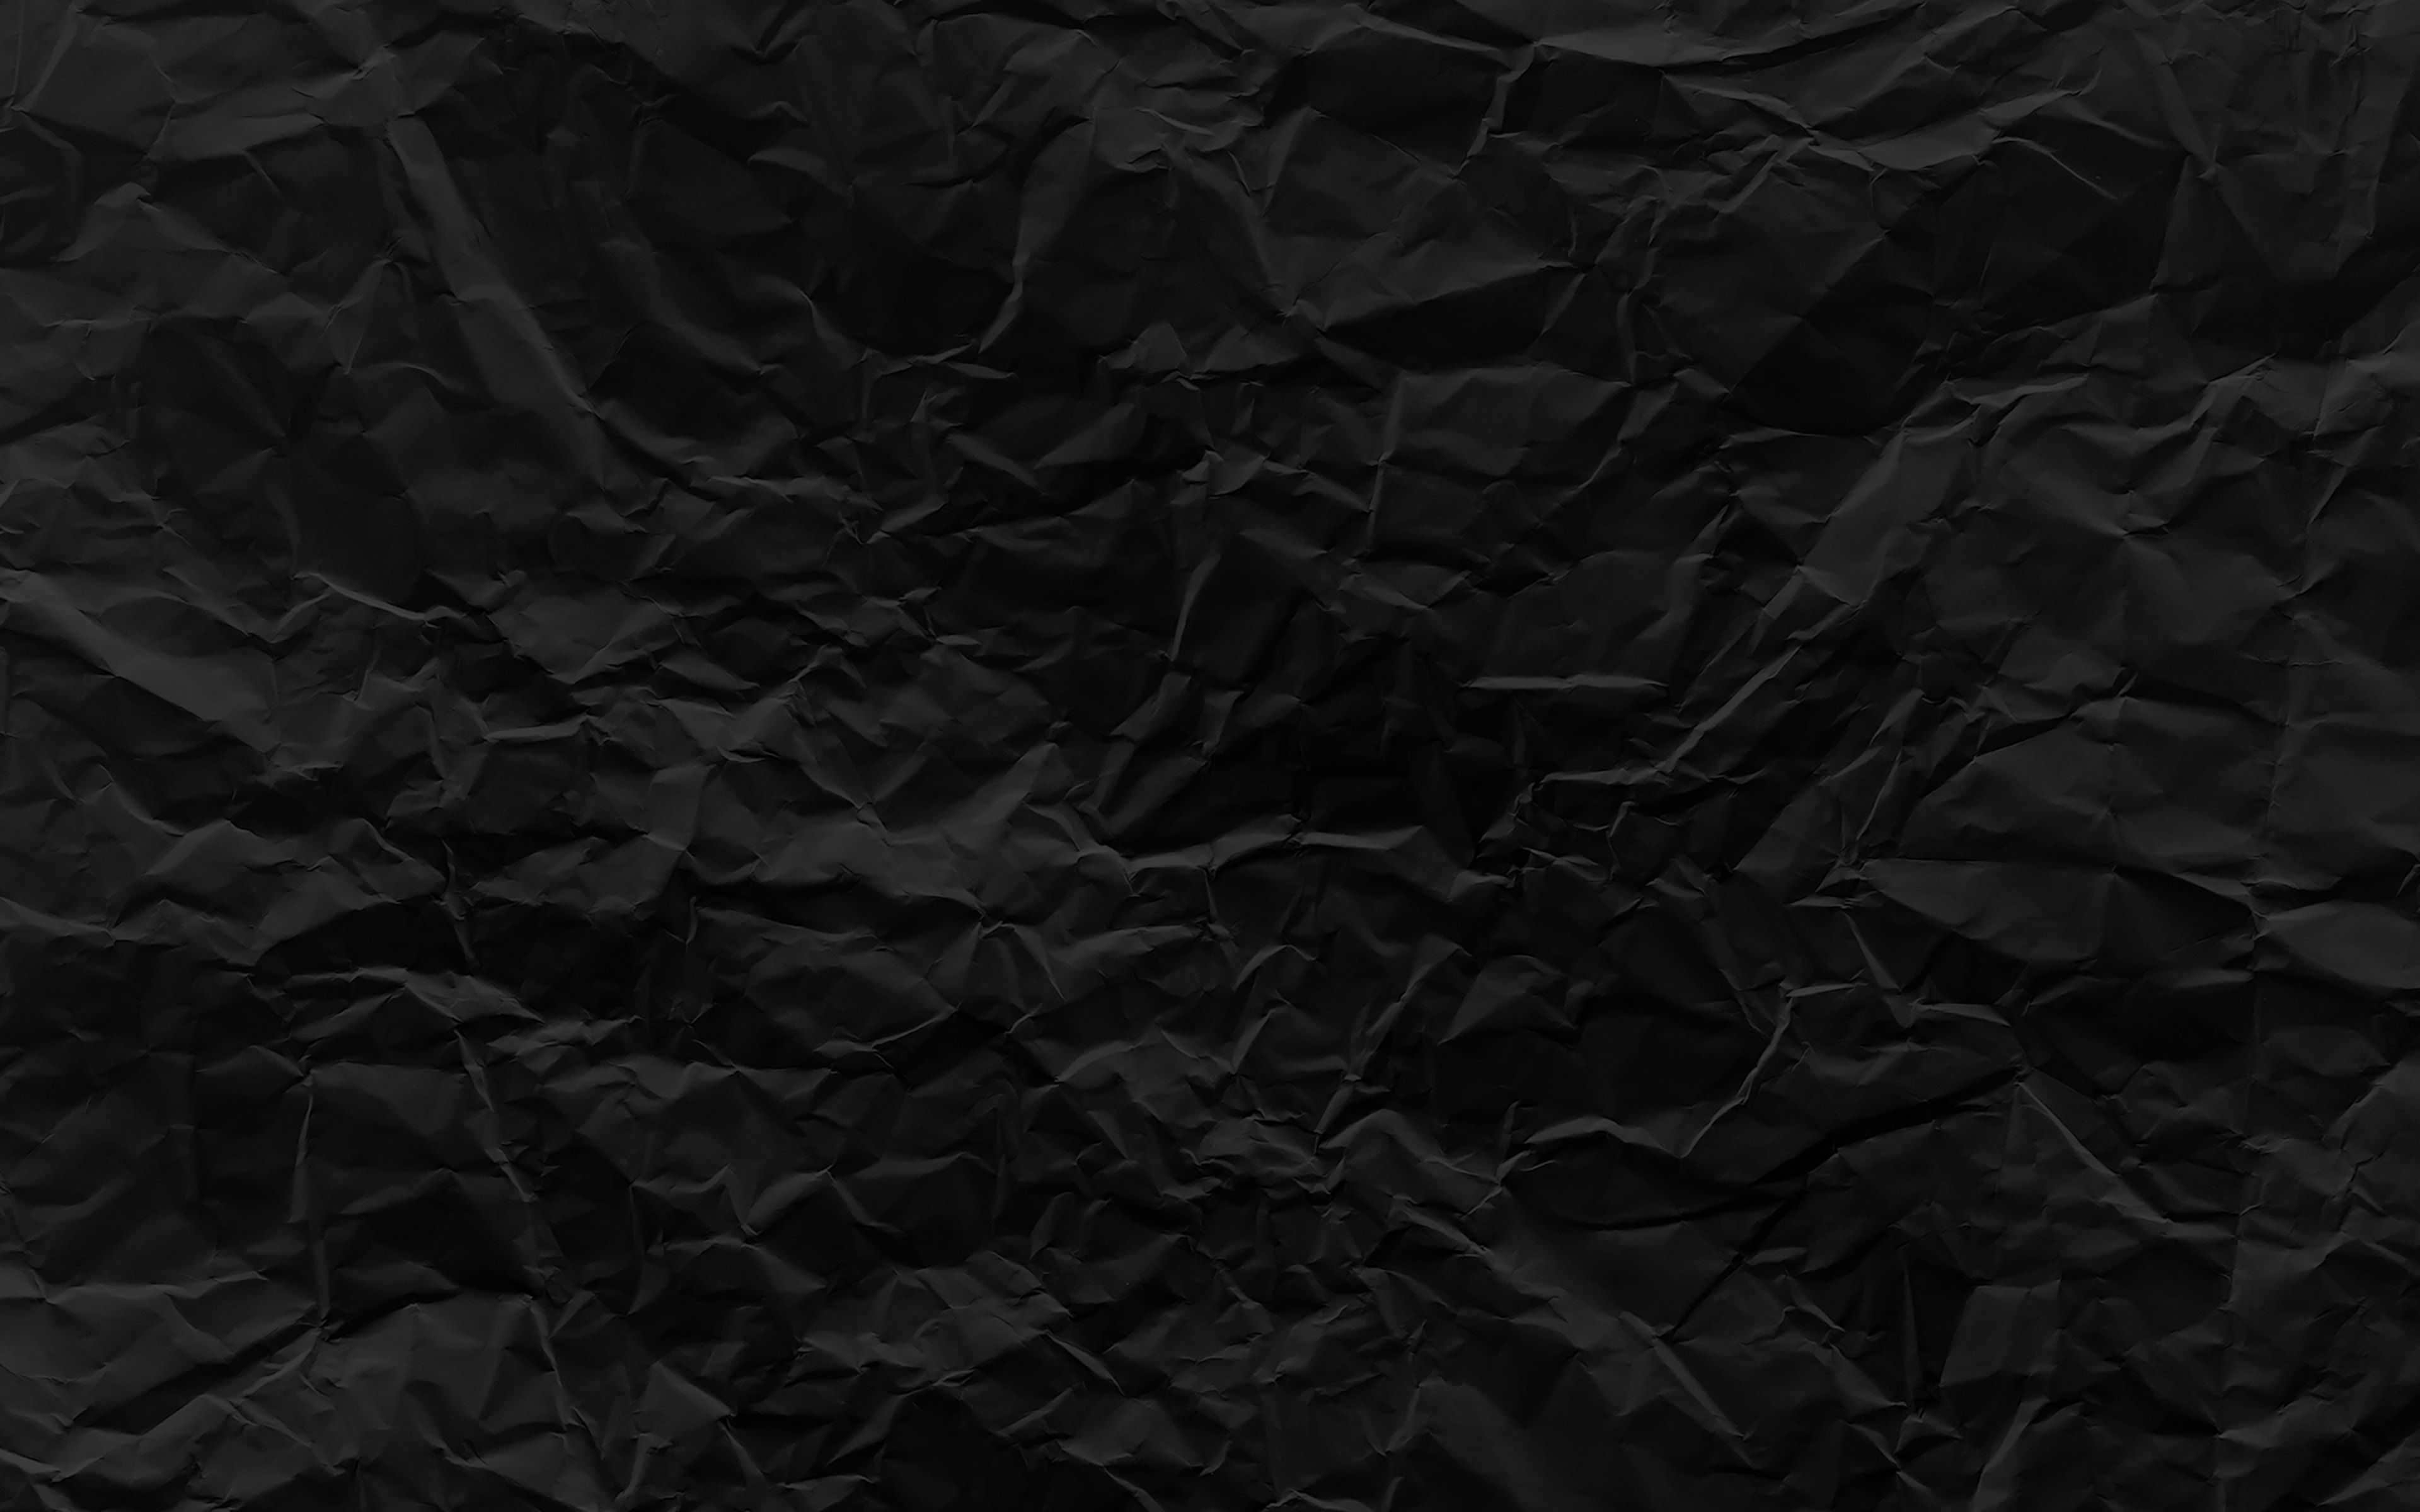 3840x2400 papers.co-vc16-paper-creased-dark-texture-36-3840x2400-4k-wallpaper ...